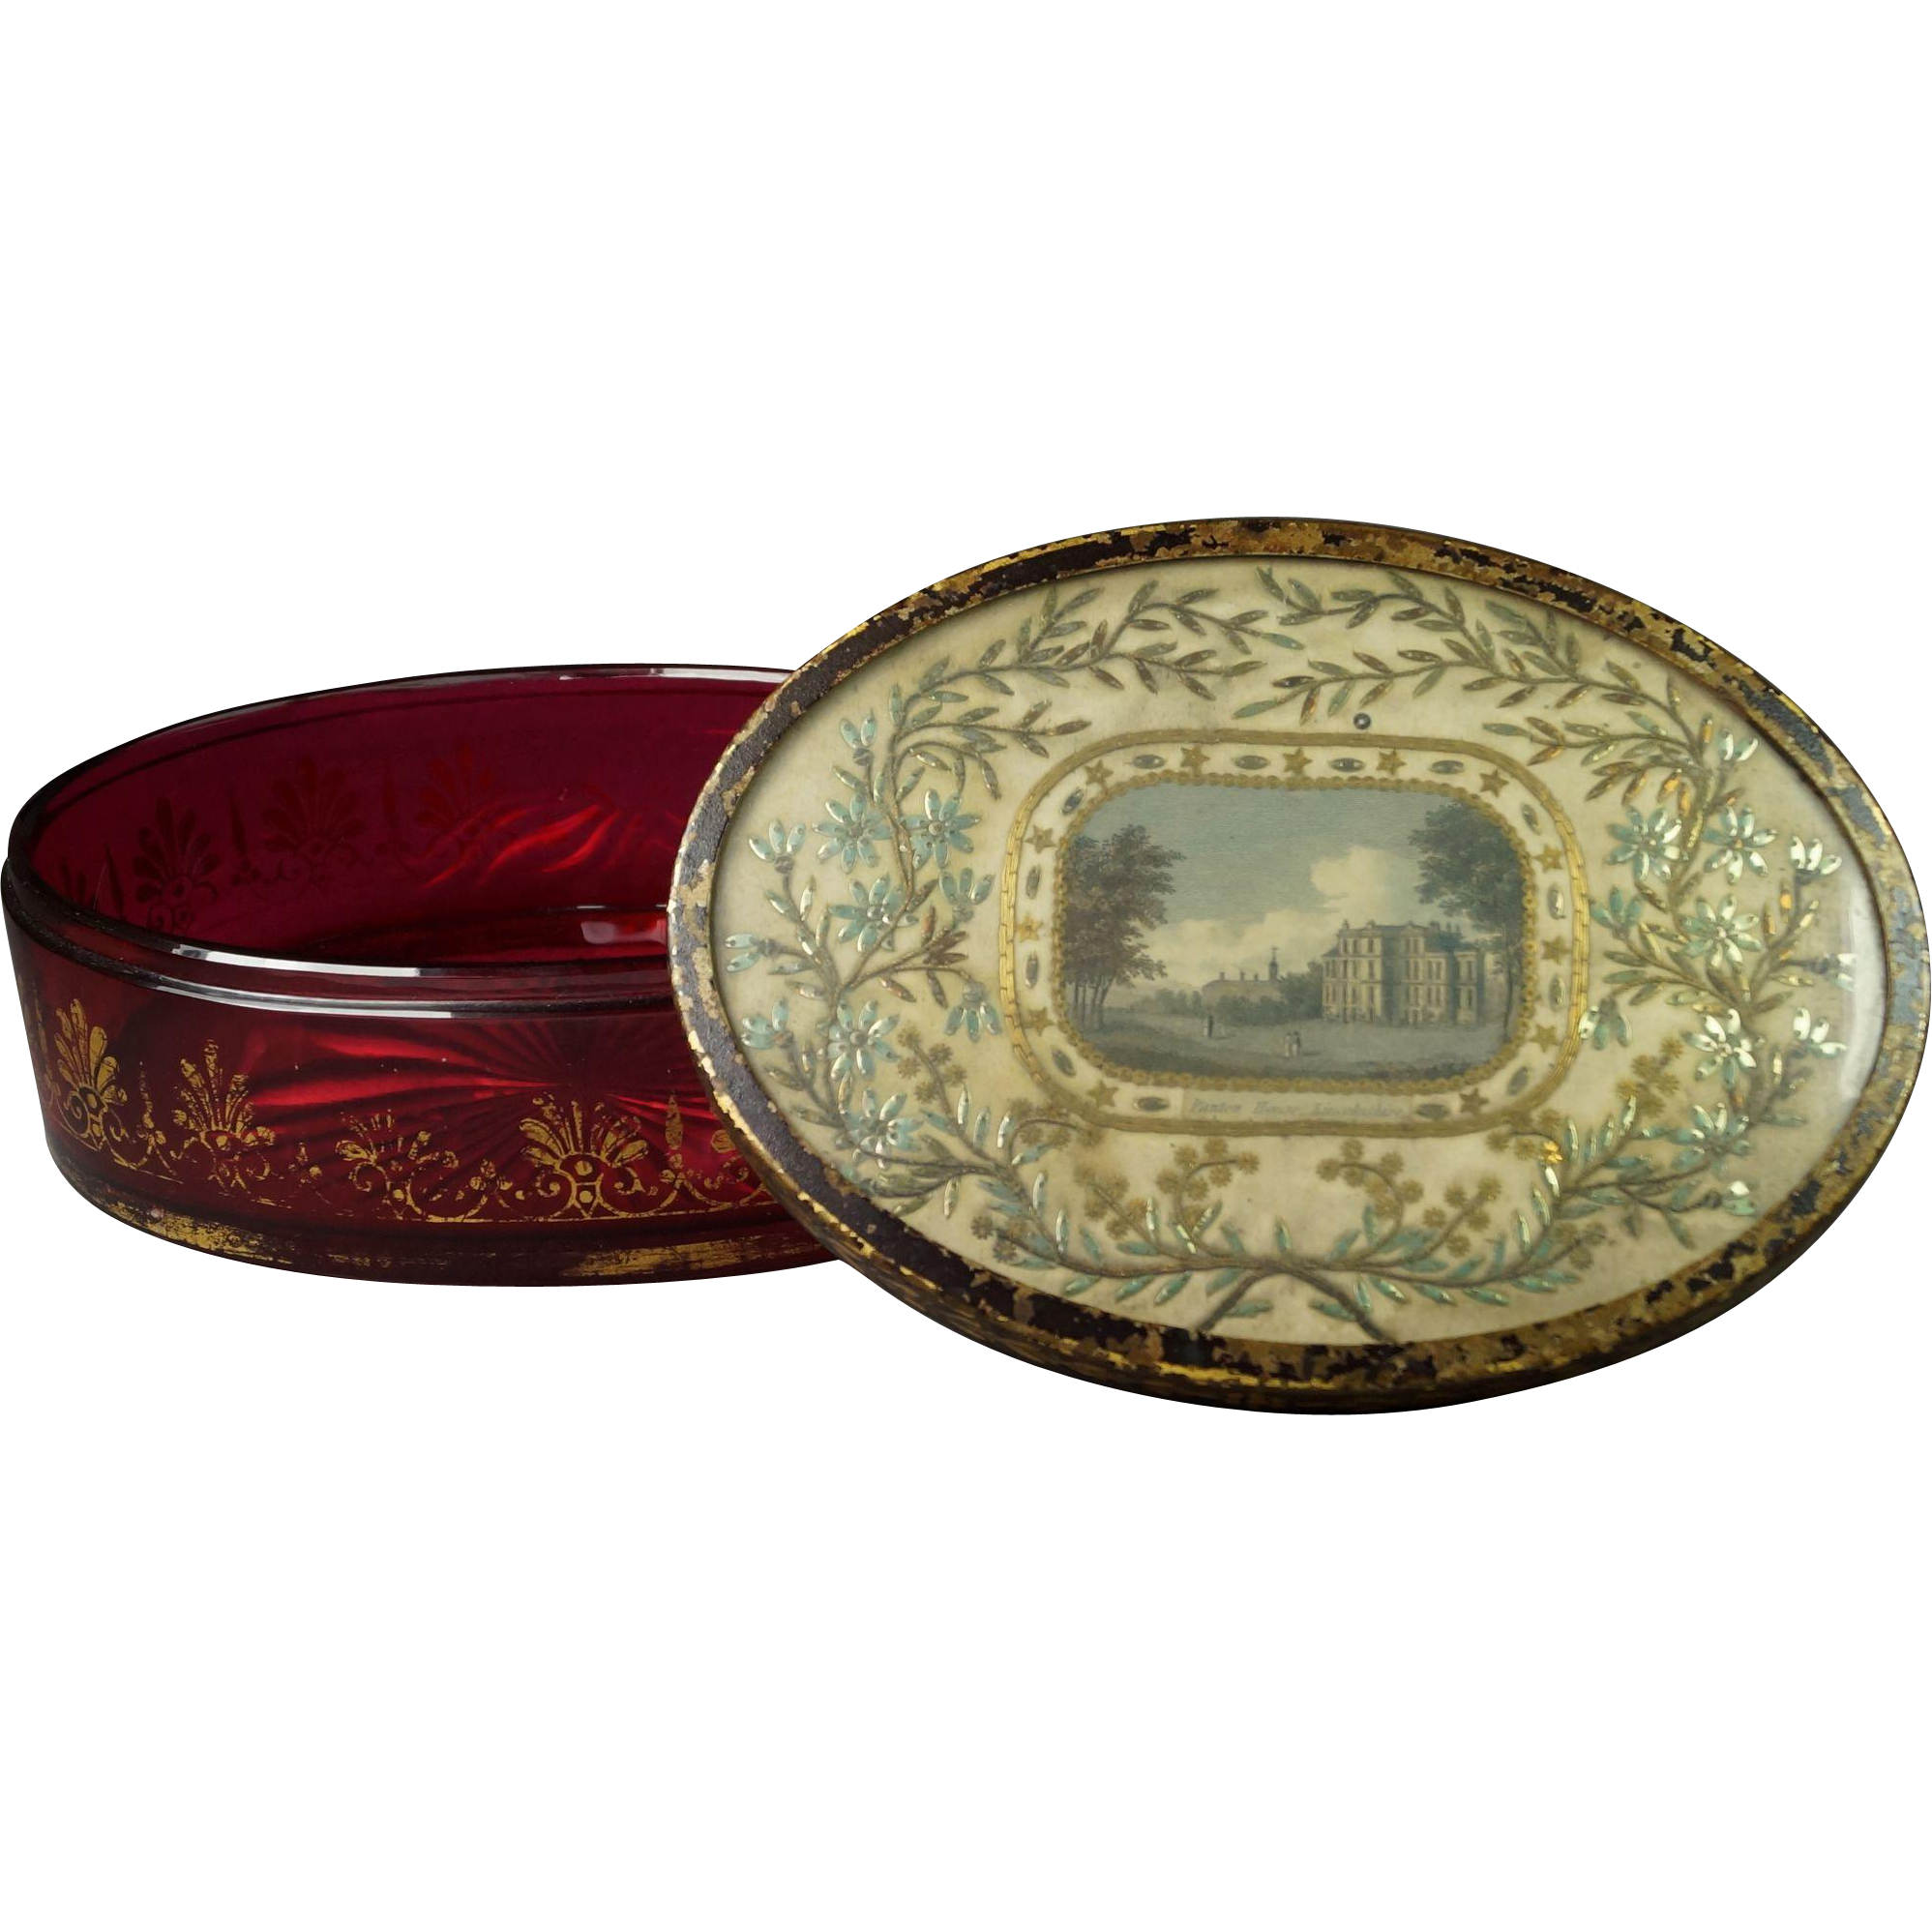 Antique Circa 1815 Cranberry Glass Box with Silkwork Lid of Panton House England George III Era Rare